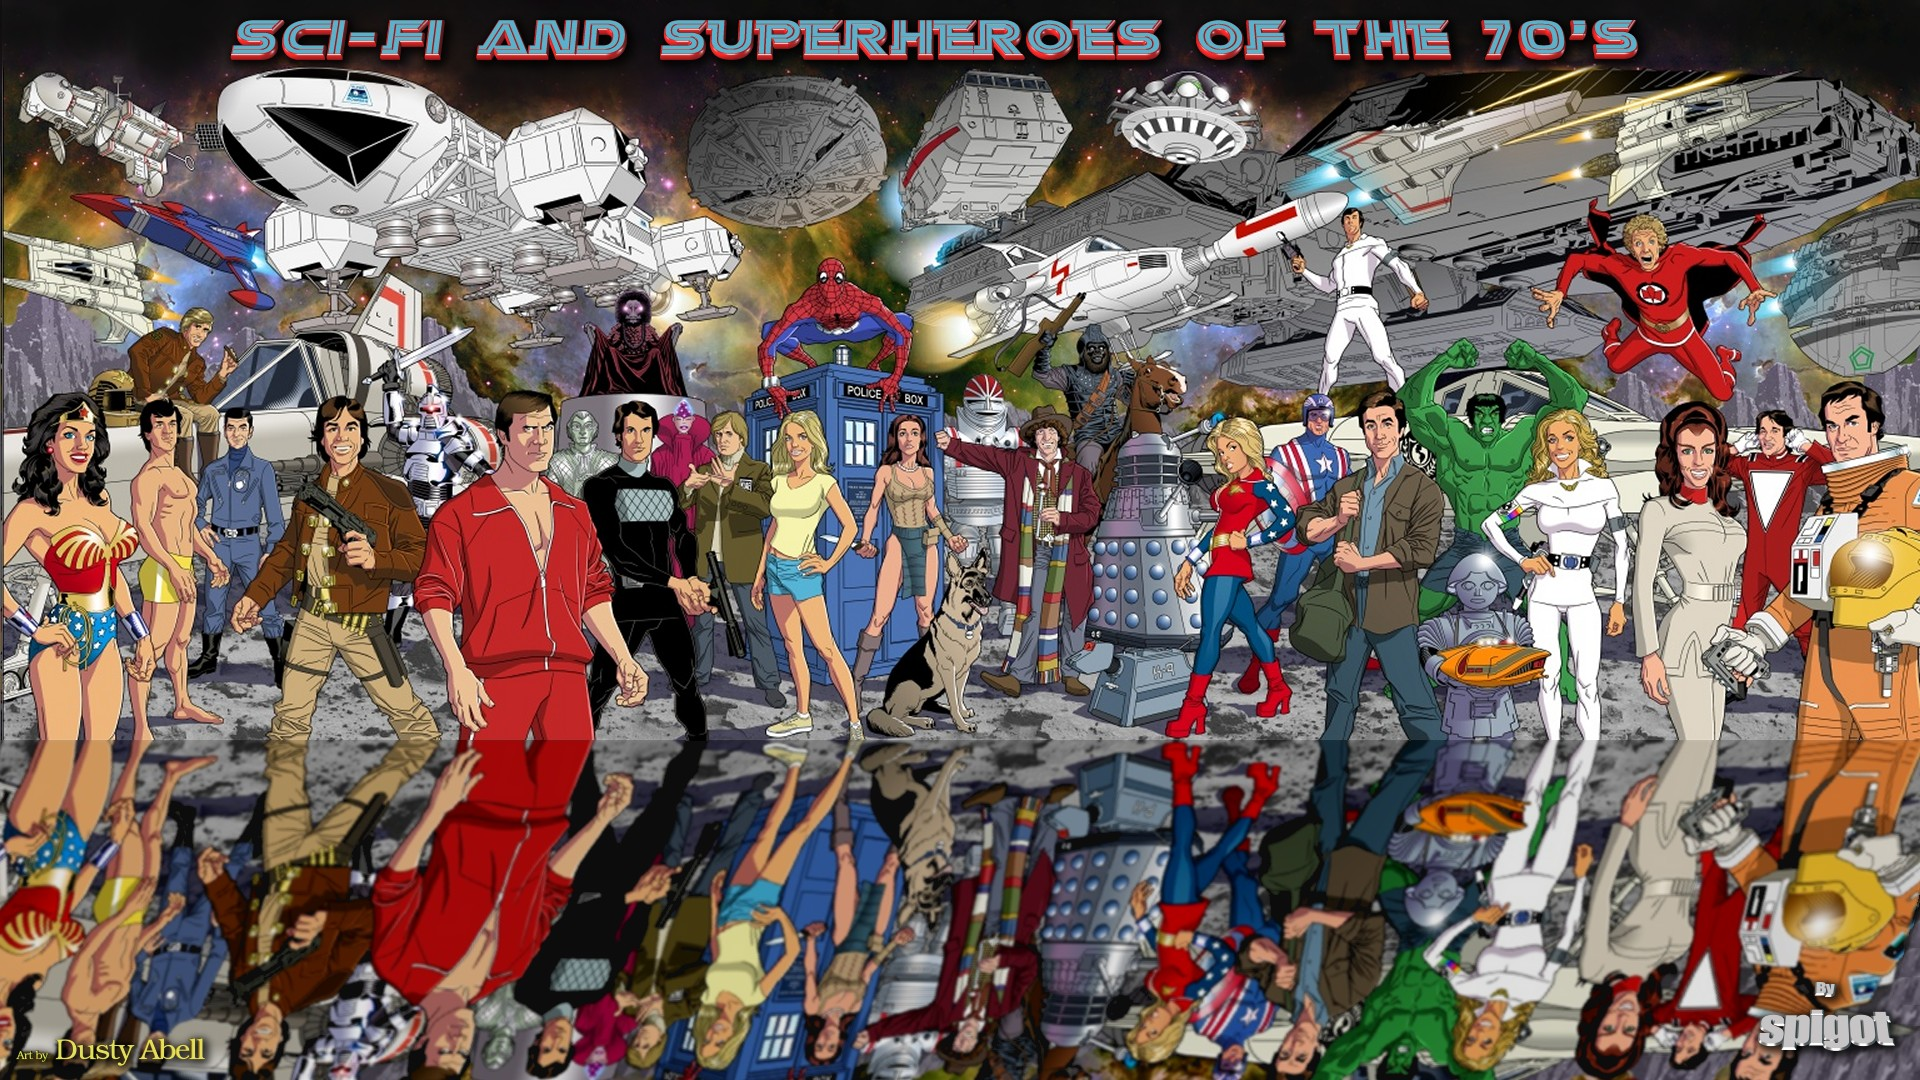 Sci Fi and Superheroes of the 70s Wallpaper George Spigots Blog 1920x1080